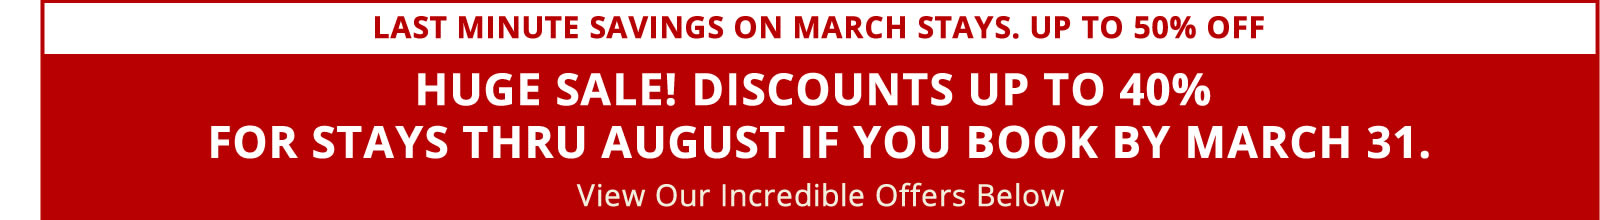 HUGE SALE! Discounts Up To 25% For Stays Thru August If You Book by March 31.